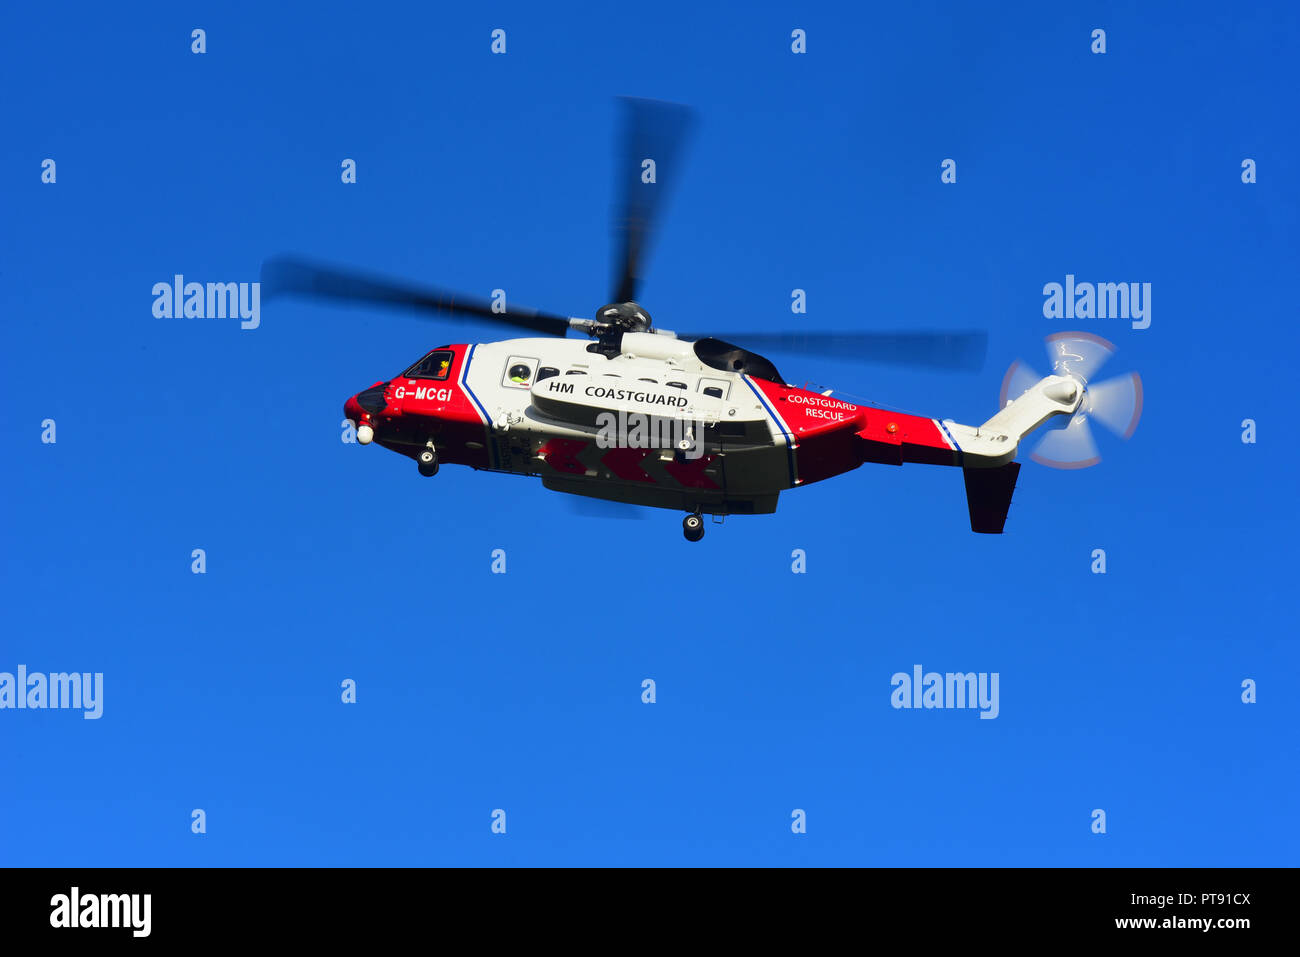 The Inverness based HM Coastguard SAR helicopter leaving its base as it heads West on a mission down to Fort William in Lochaber district. Stock Photo